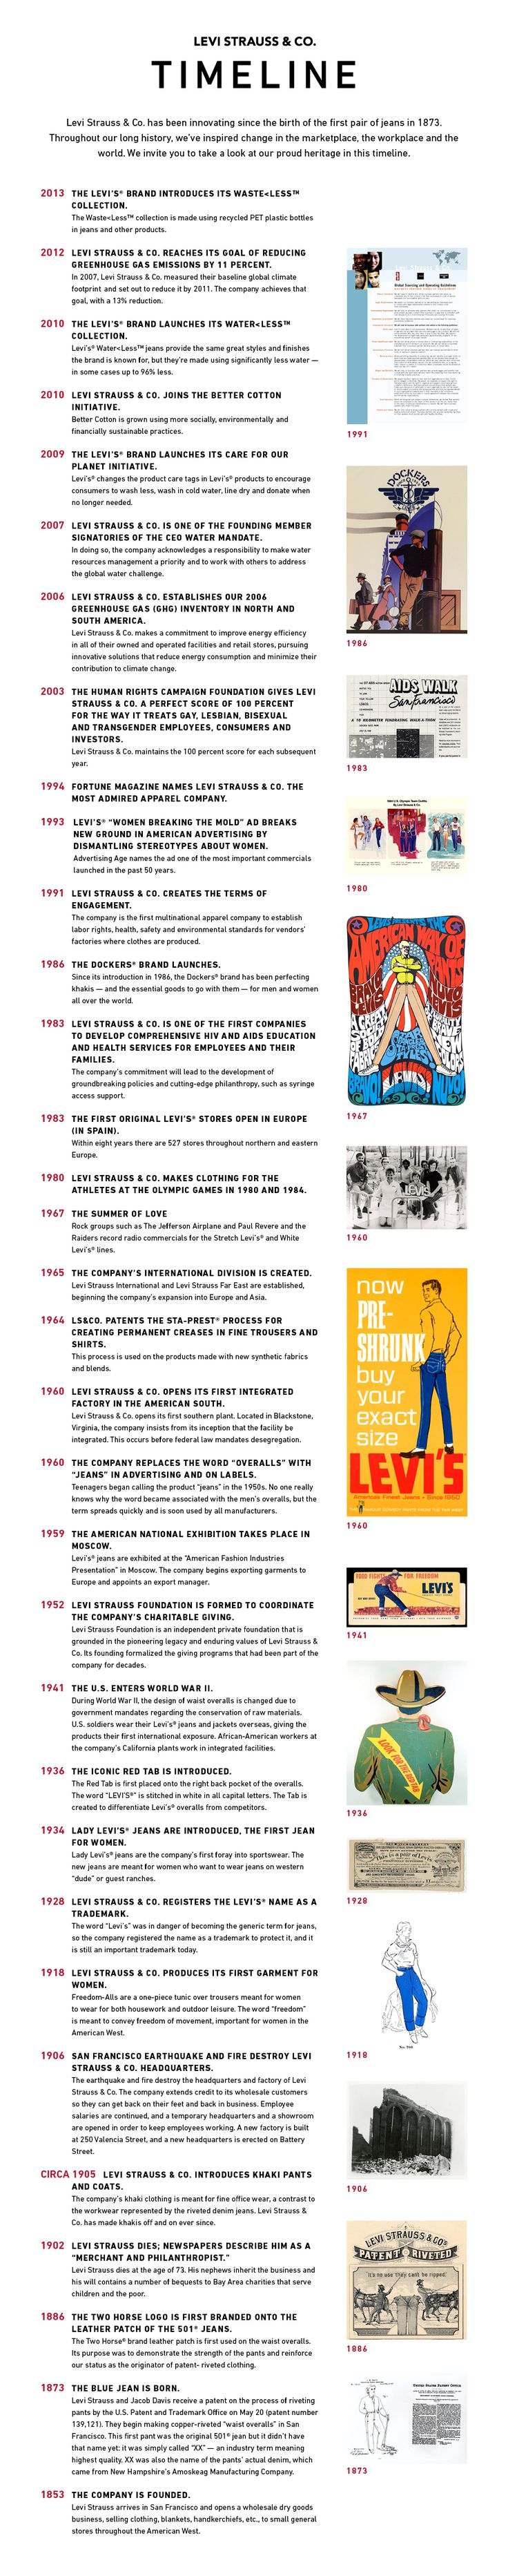 Levi Strauss & Co. has been innovating since the birth of the first pair of jeans in 1873. Throughout our long history, we've inspired change in the marketplace, the workplace and the world. We invite you to take a look at our proud heritage in this timeline.